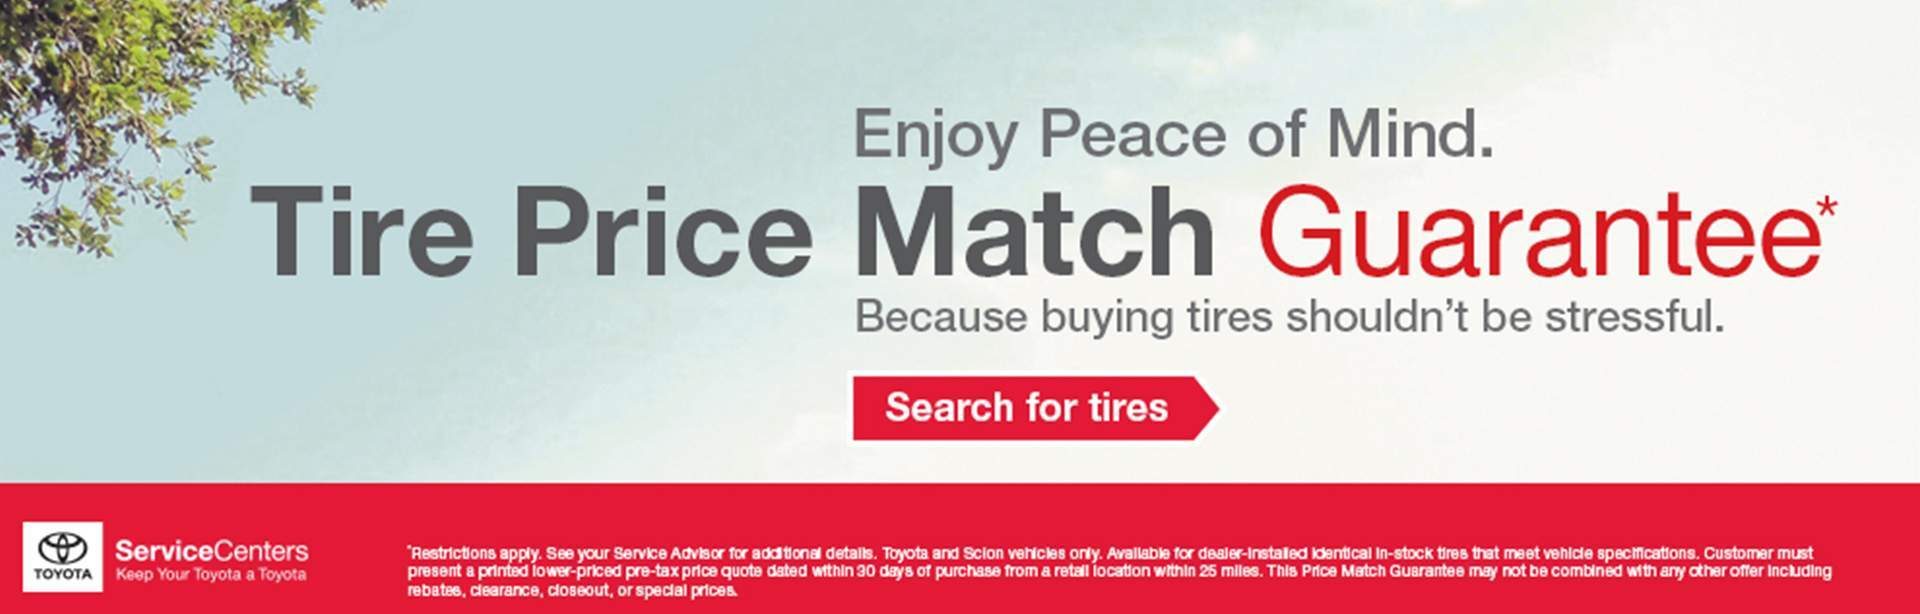 Tire Price Match Savings